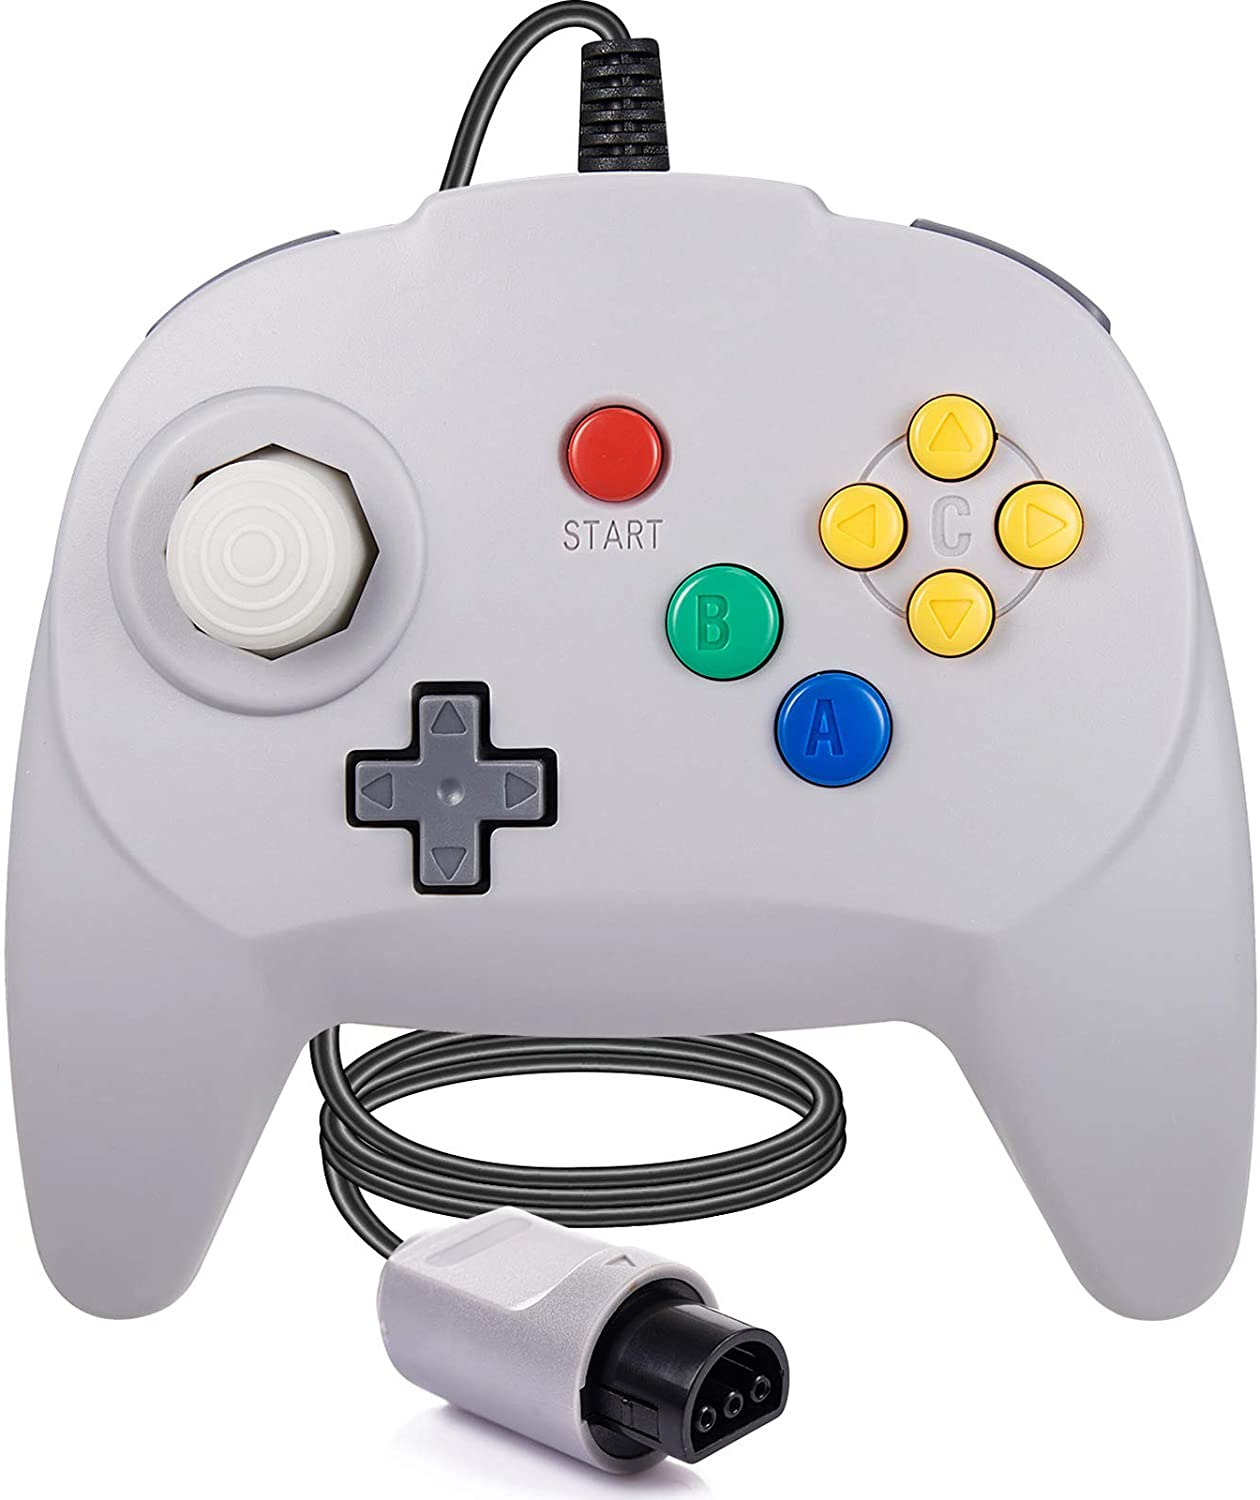 miadore Retro N64 Controller Wired N64 Classic 64-bit Mini Gamepad Remote with Upgraded Japan Joystick for Original Ultra N64 Console Video Game System (Gray)